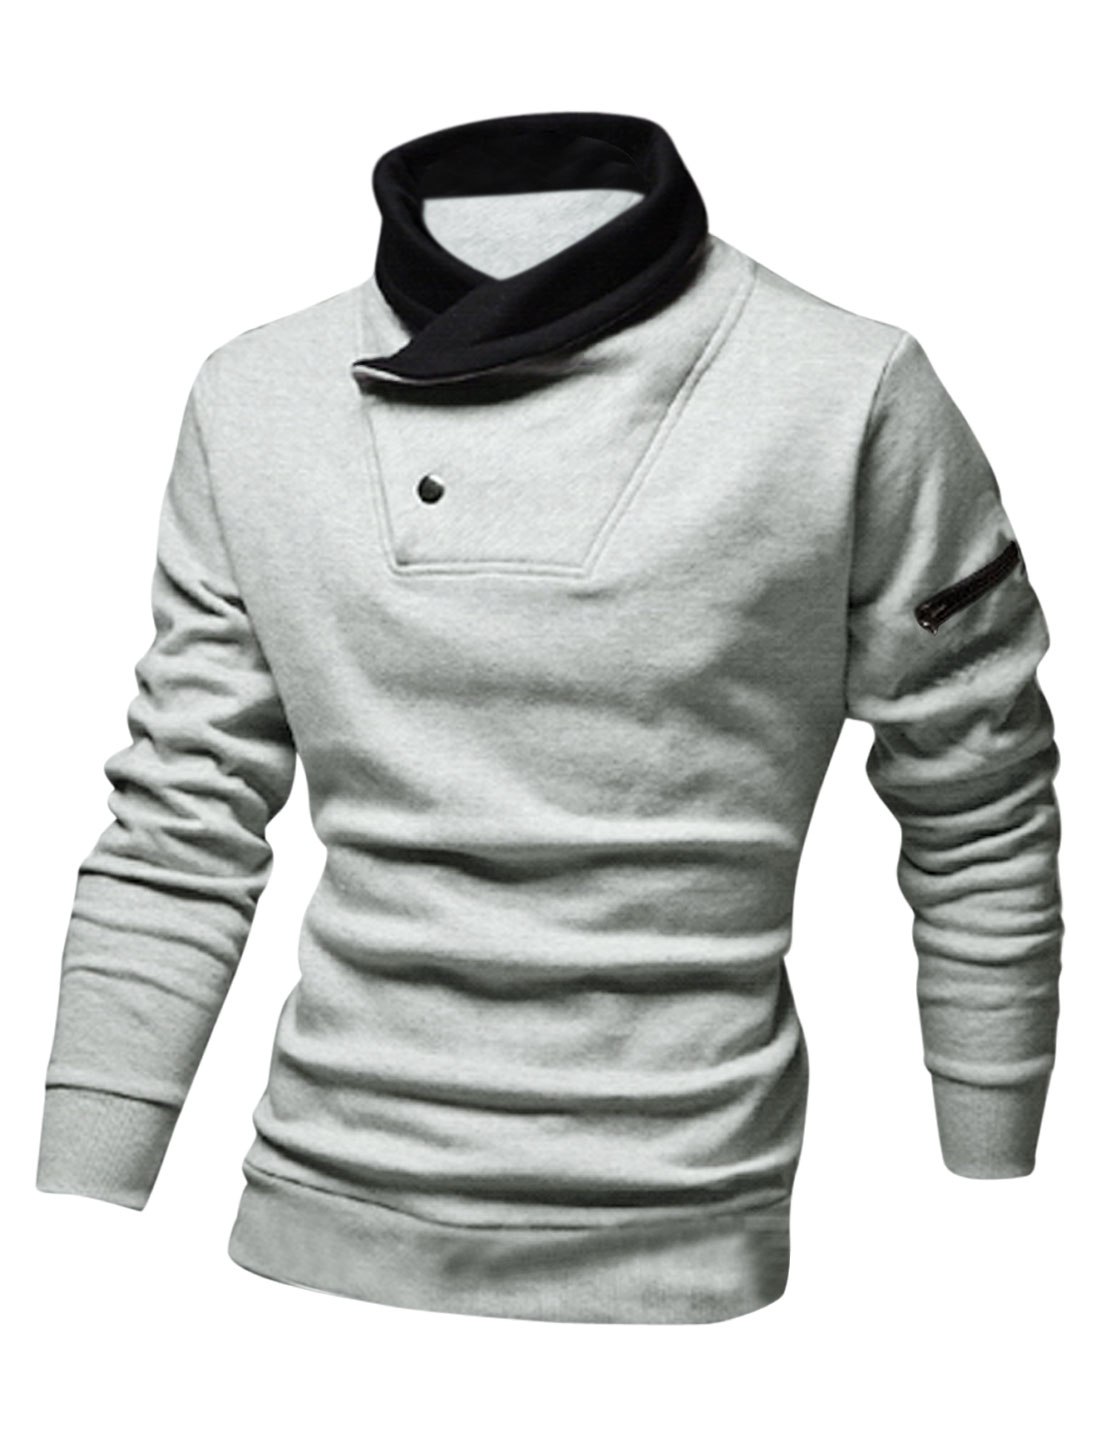 Men Contrast Collar Fleece Lined Zipper Decor Casual Sweatshirt Light Gray M